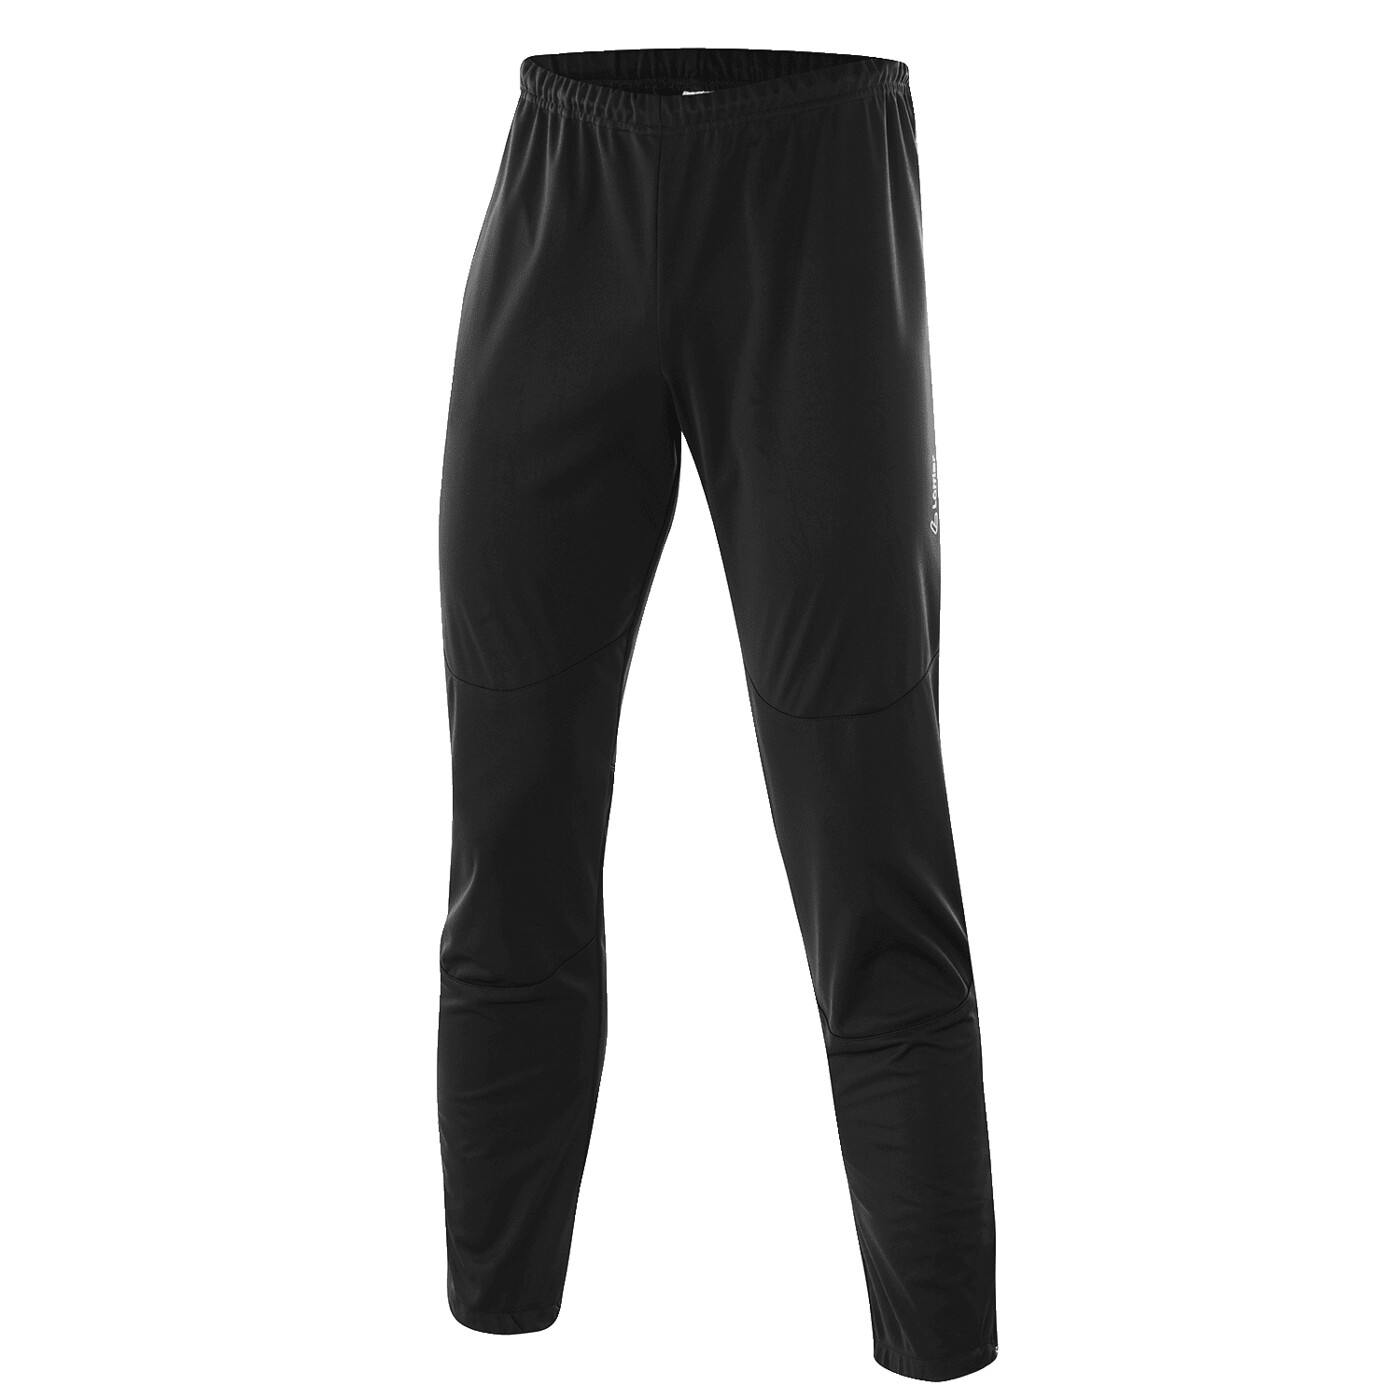 LÖFFLER M PANTS WS LIGHT - Herren